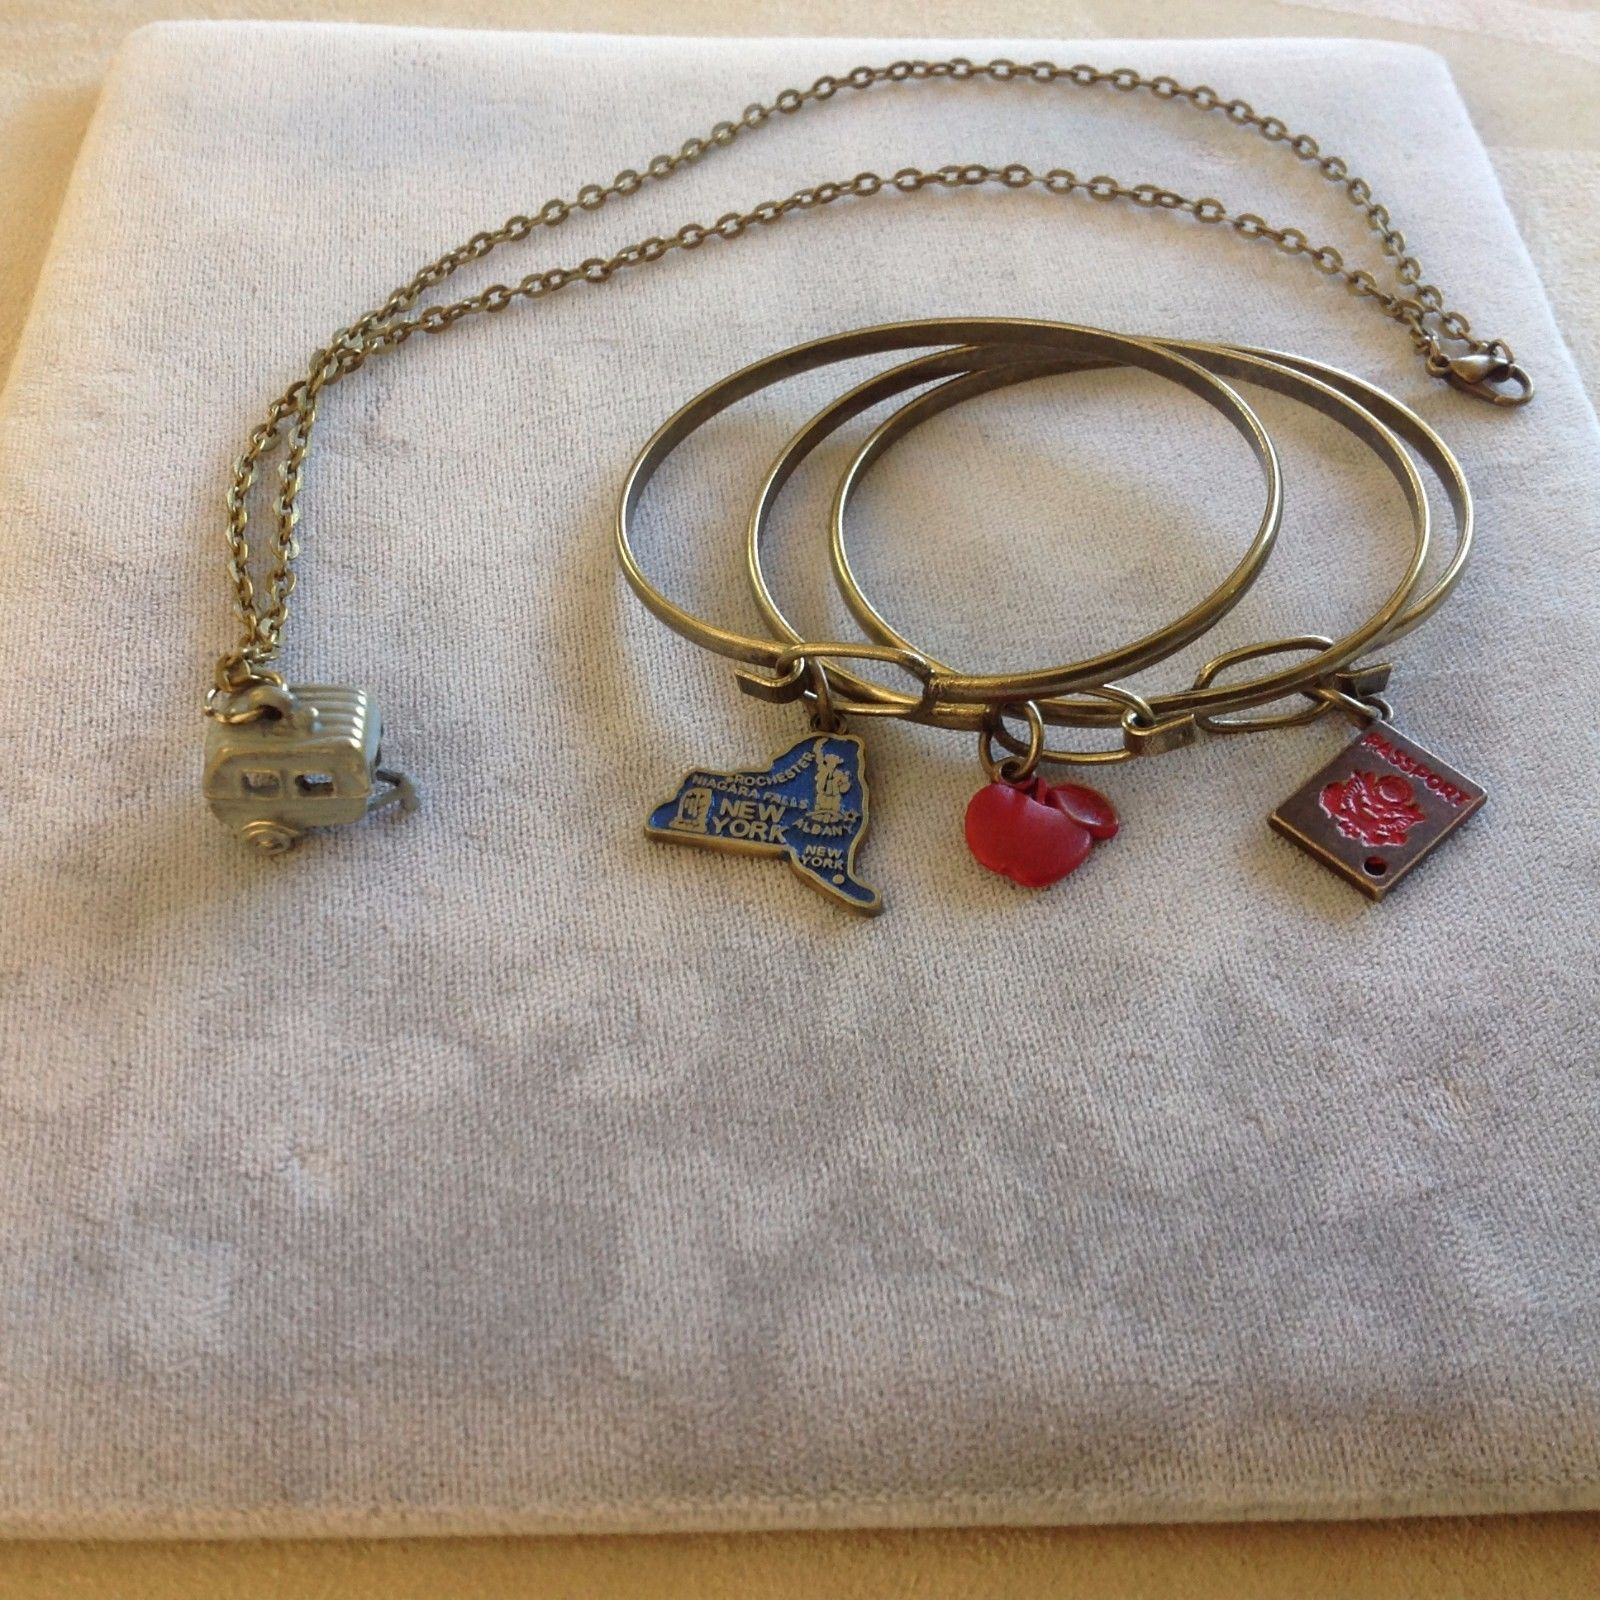 New Travel Jewelry Collection Necklace Camper Charm Bracelets Passport New York